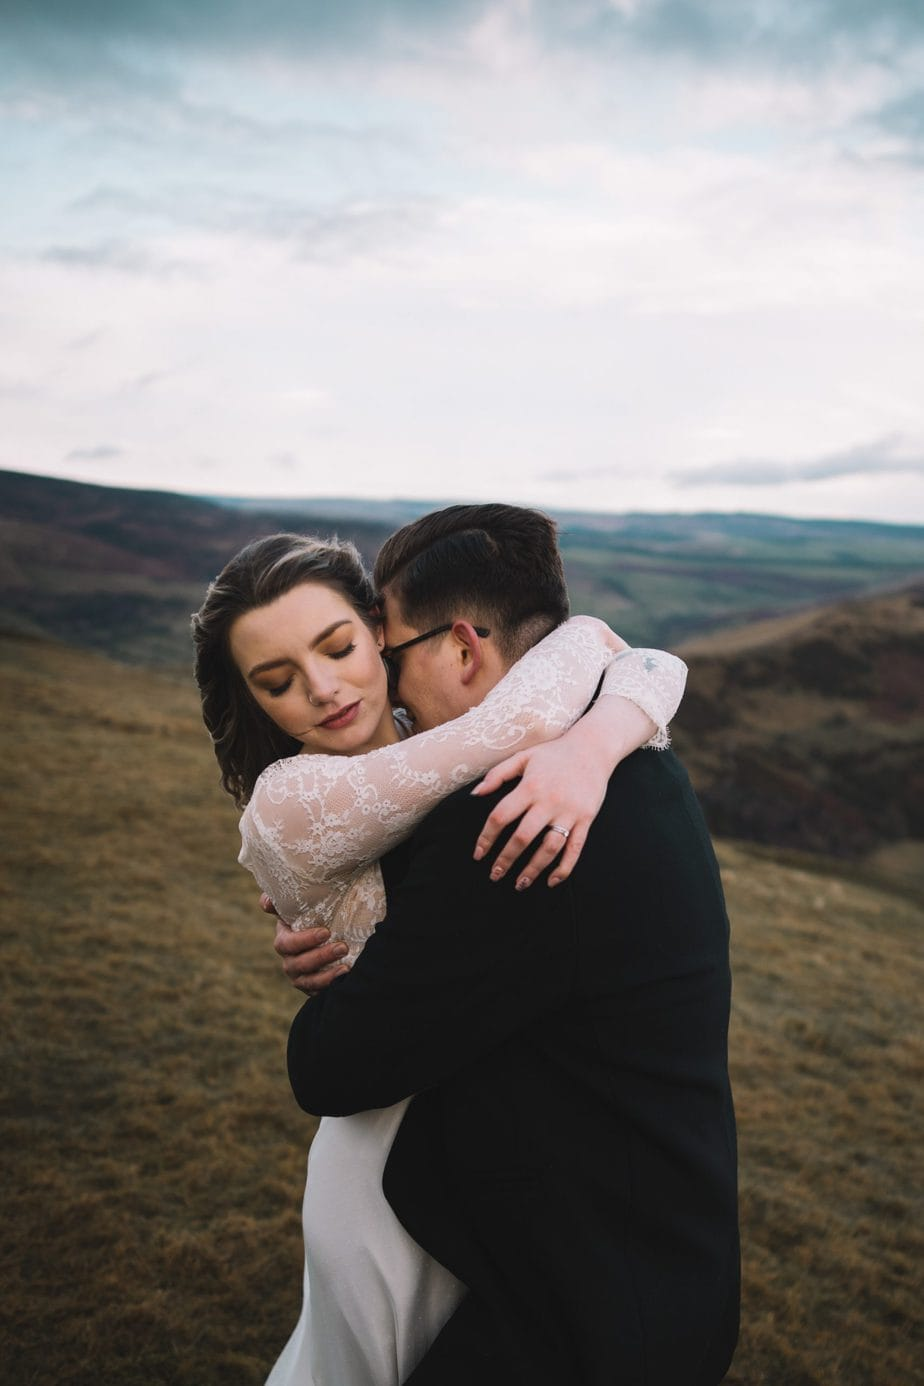 Bride and groom cuddling in the hills during their elopement.